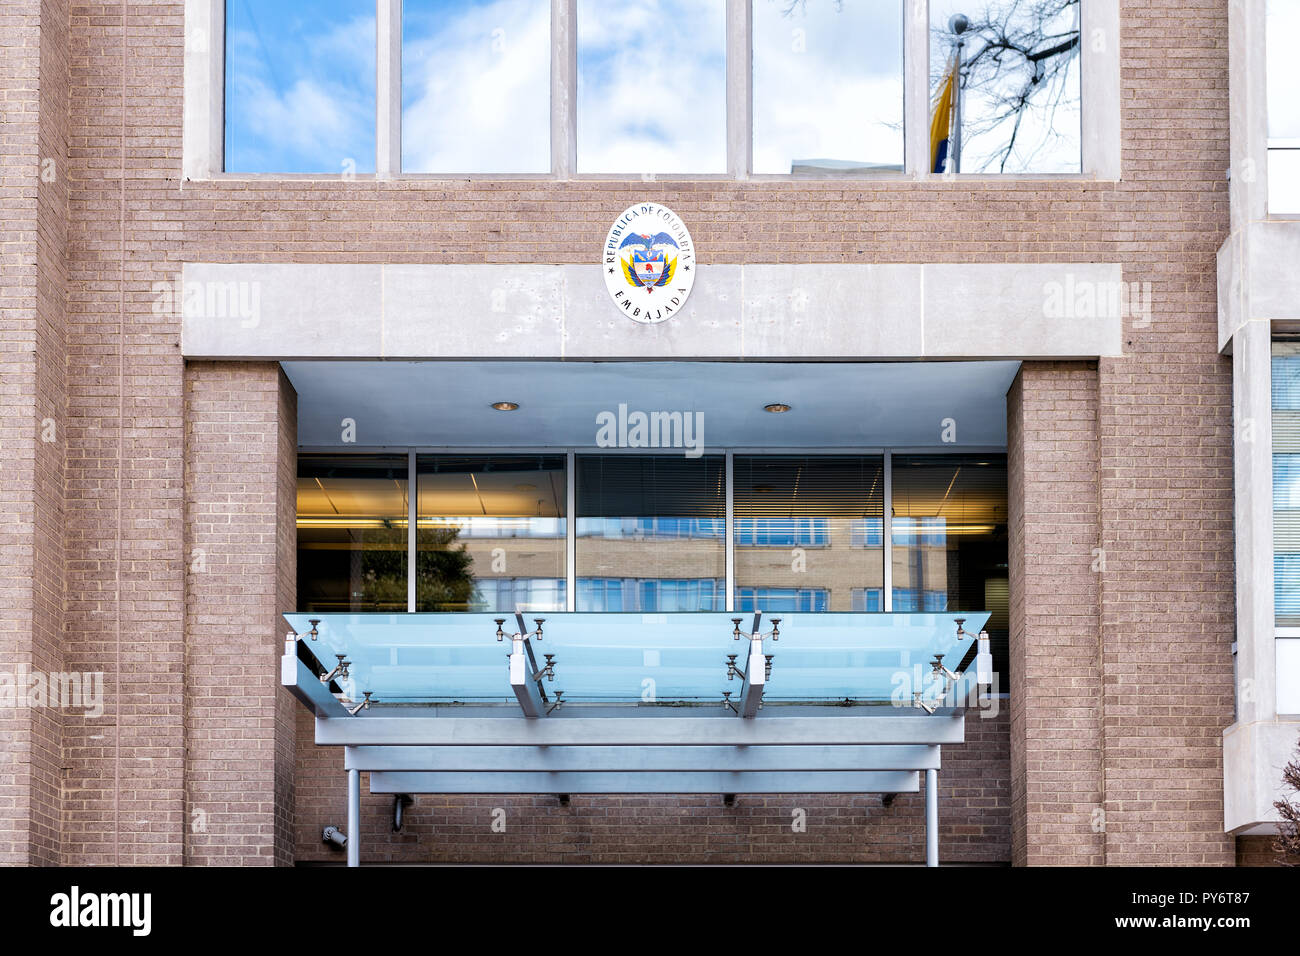 Washington DC, USA - March 9, 2018: Republic of Colombia embassy and consulate sign entrance building in capital city, nobody, exterior - Stock Image